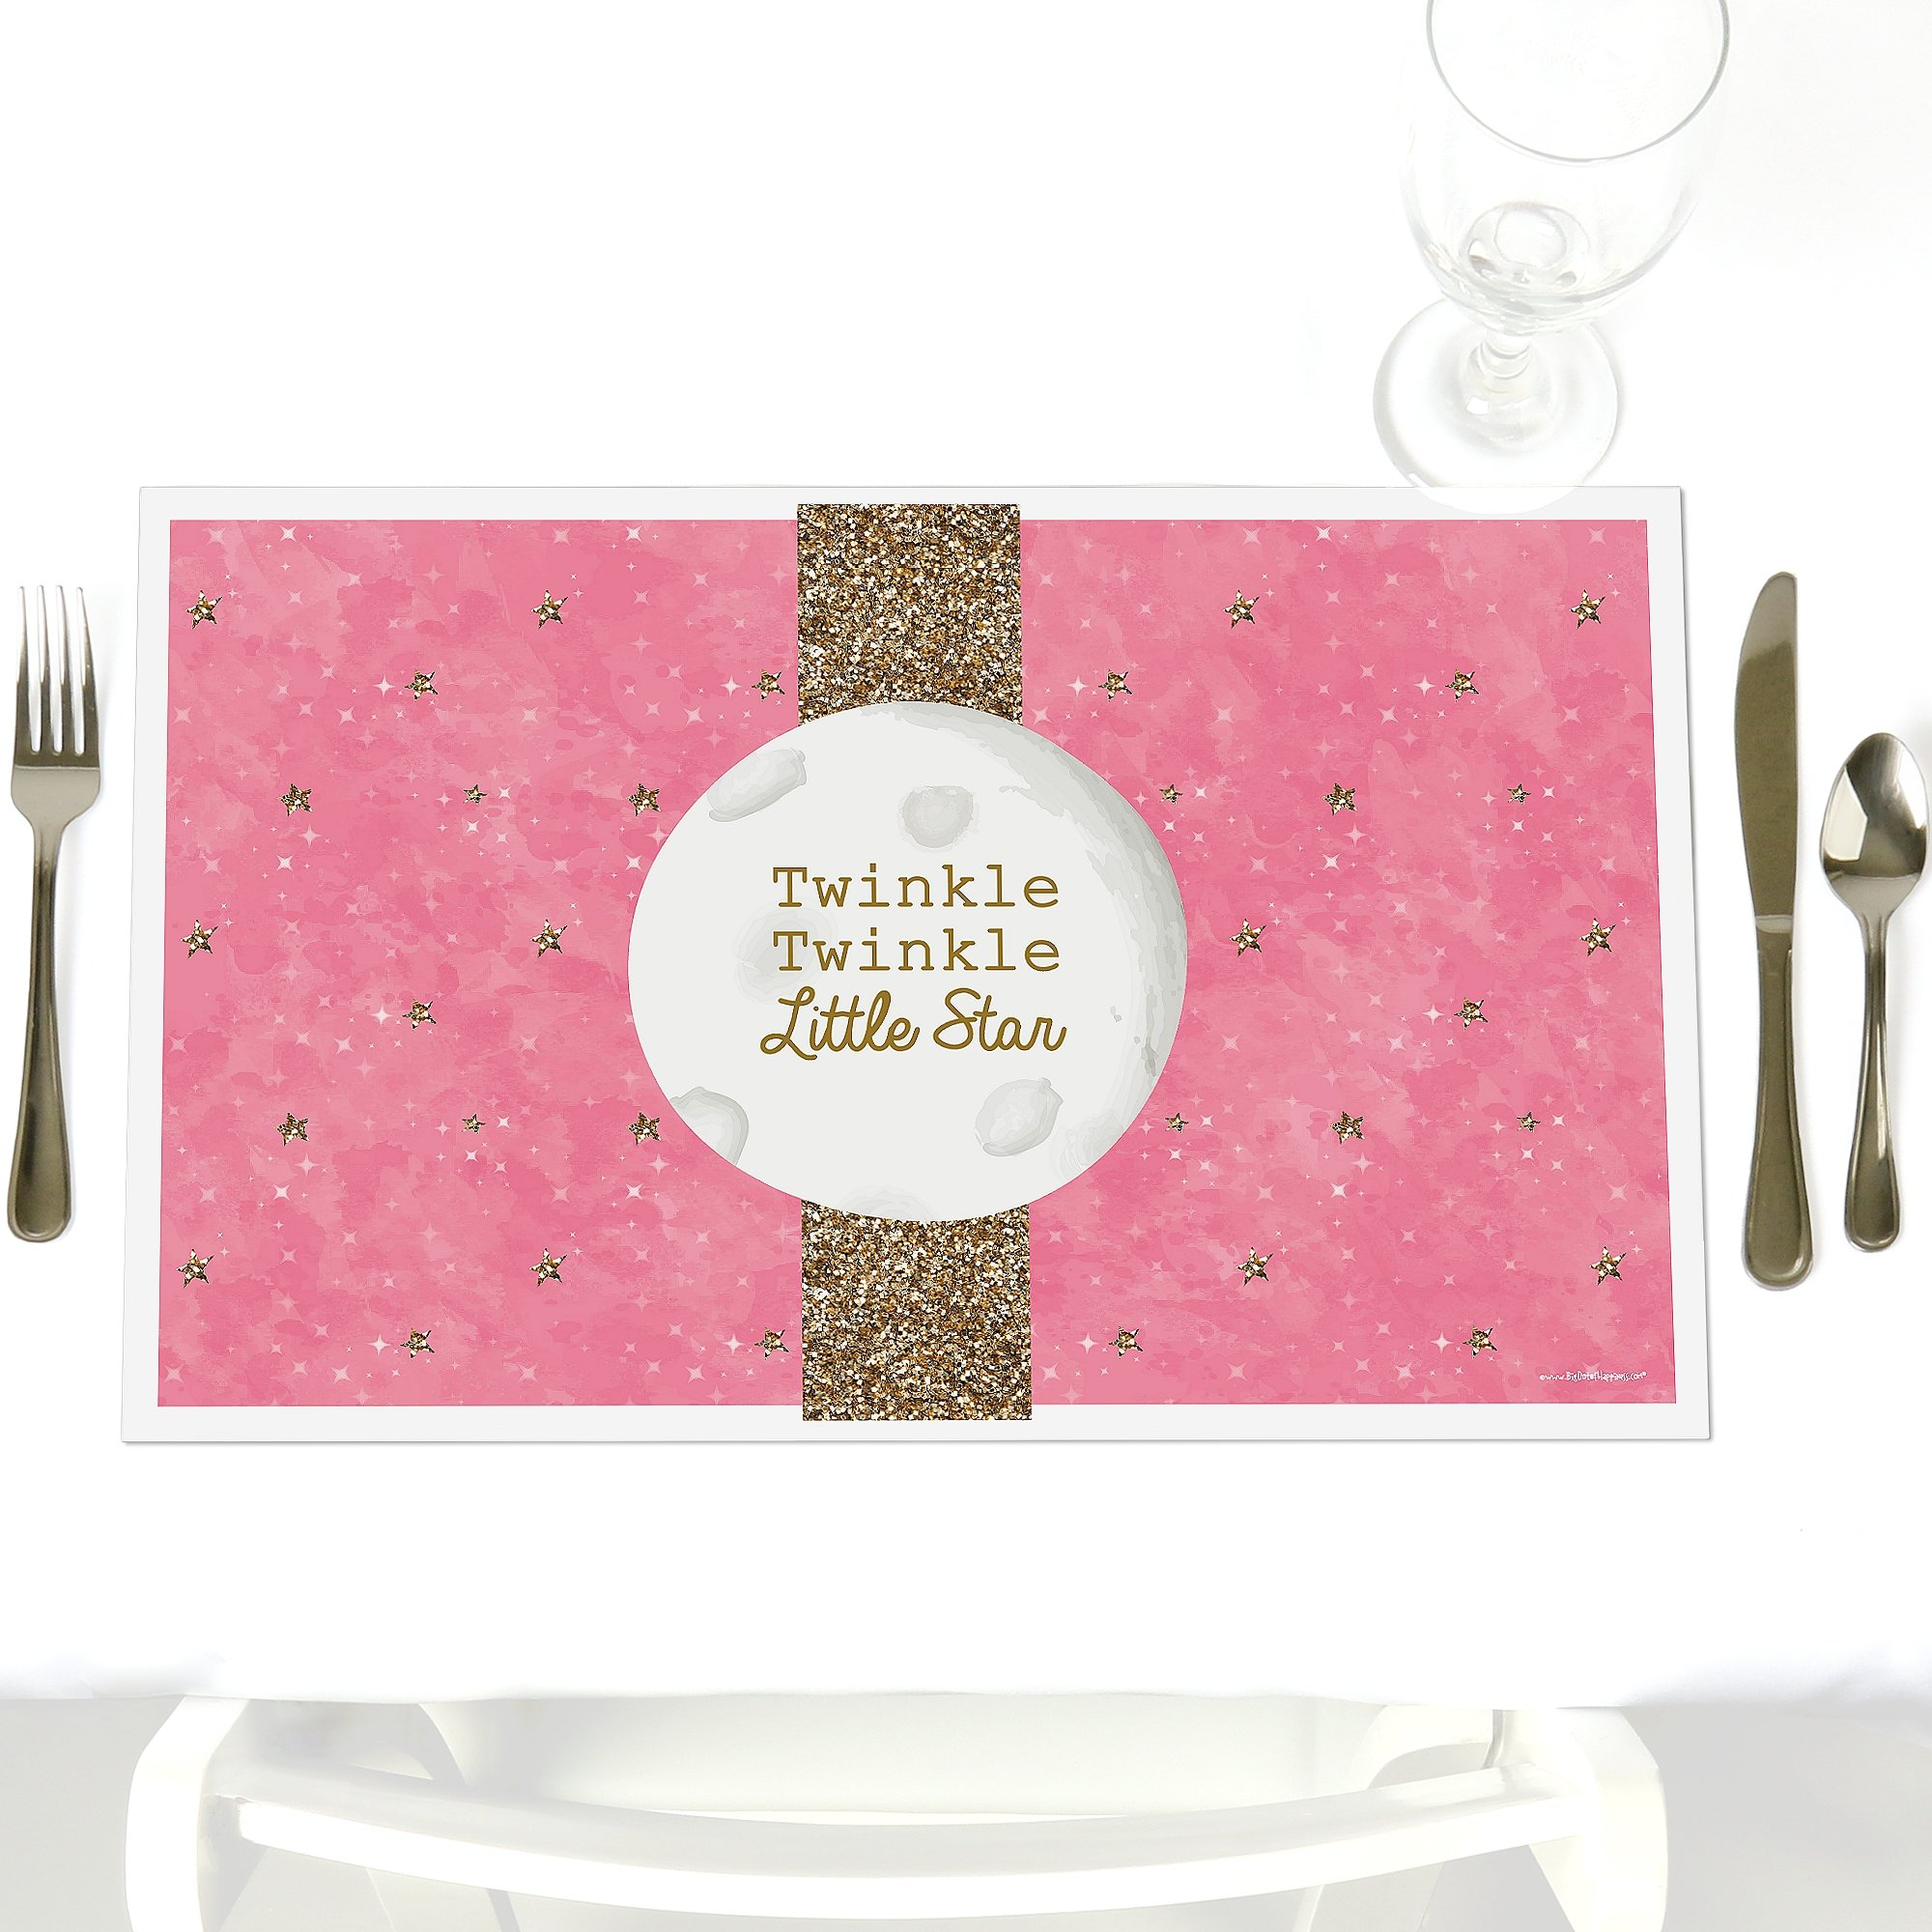 Pink Twinkle Twinkle Little Star - Party Table Decorations - Baby Shower or Birthday Party Placemats - Set of 12 by Big Dot of Happiness